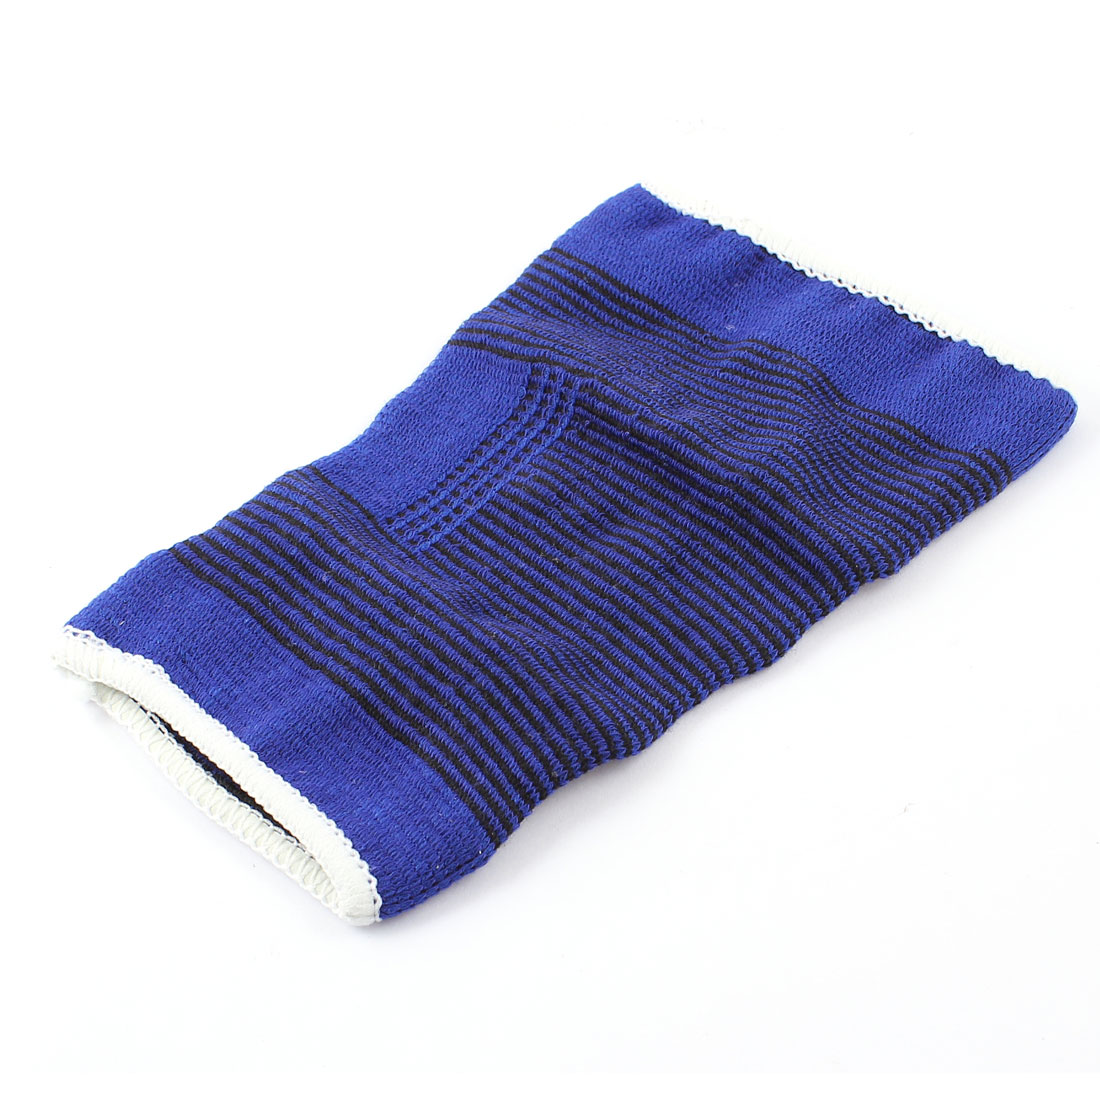 Blue Black Pinstripe Pullover Wearing Stretchy Knee Support Protector Sleeve